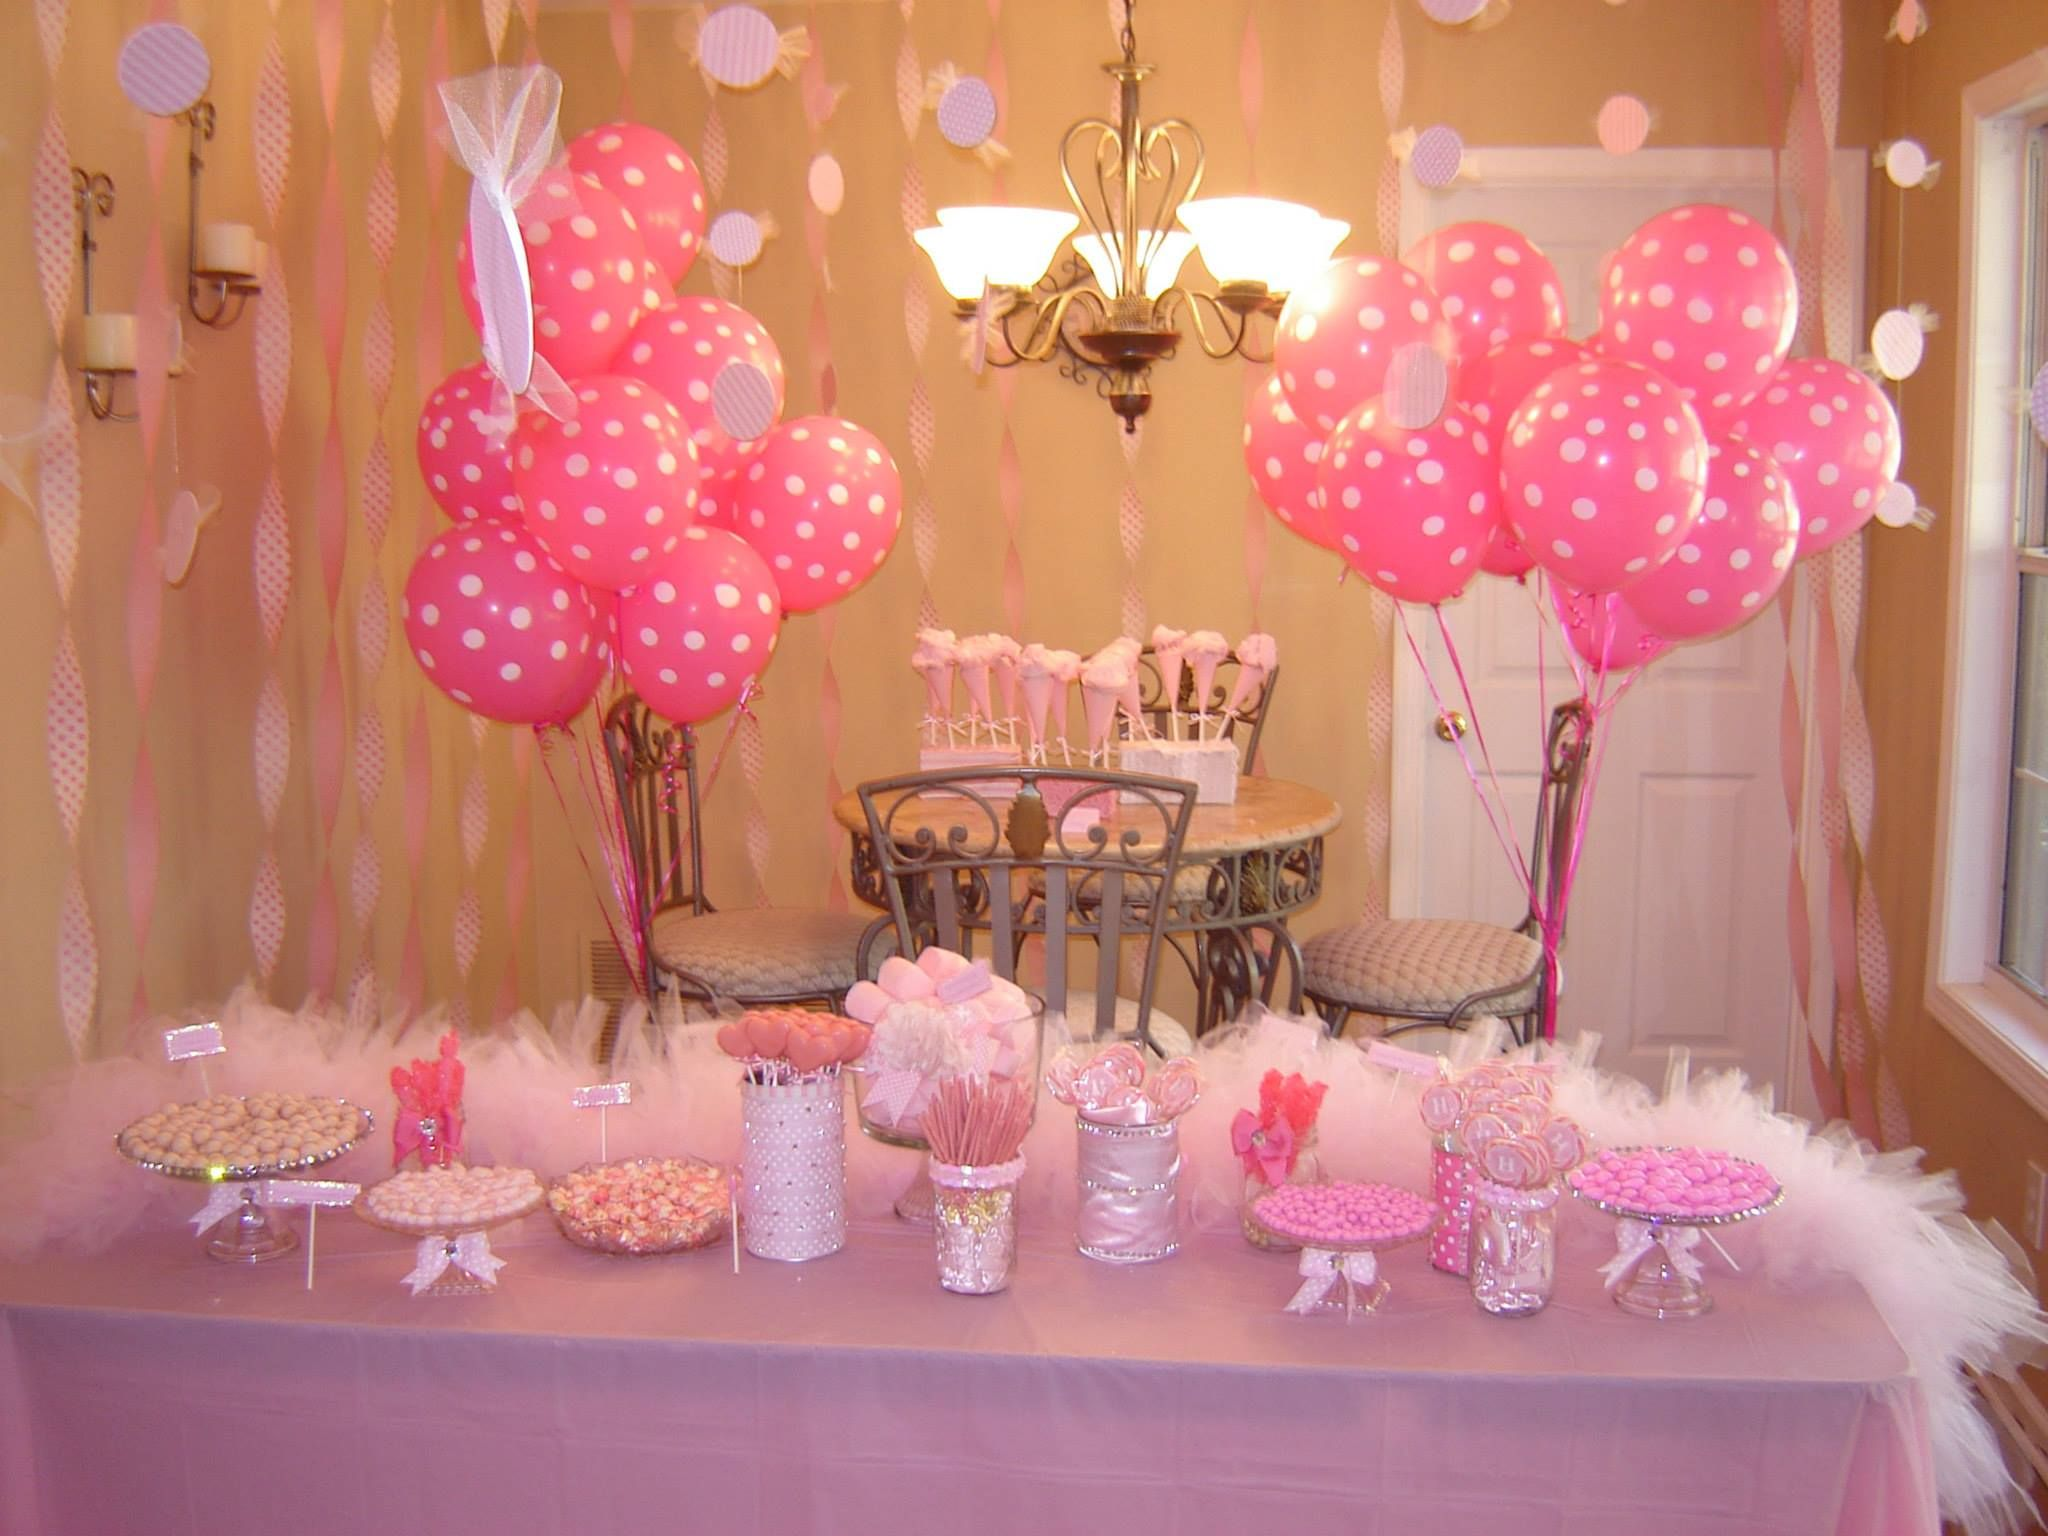 16 Creative Ideas for Hosting Party in Small Spaces Birthdays